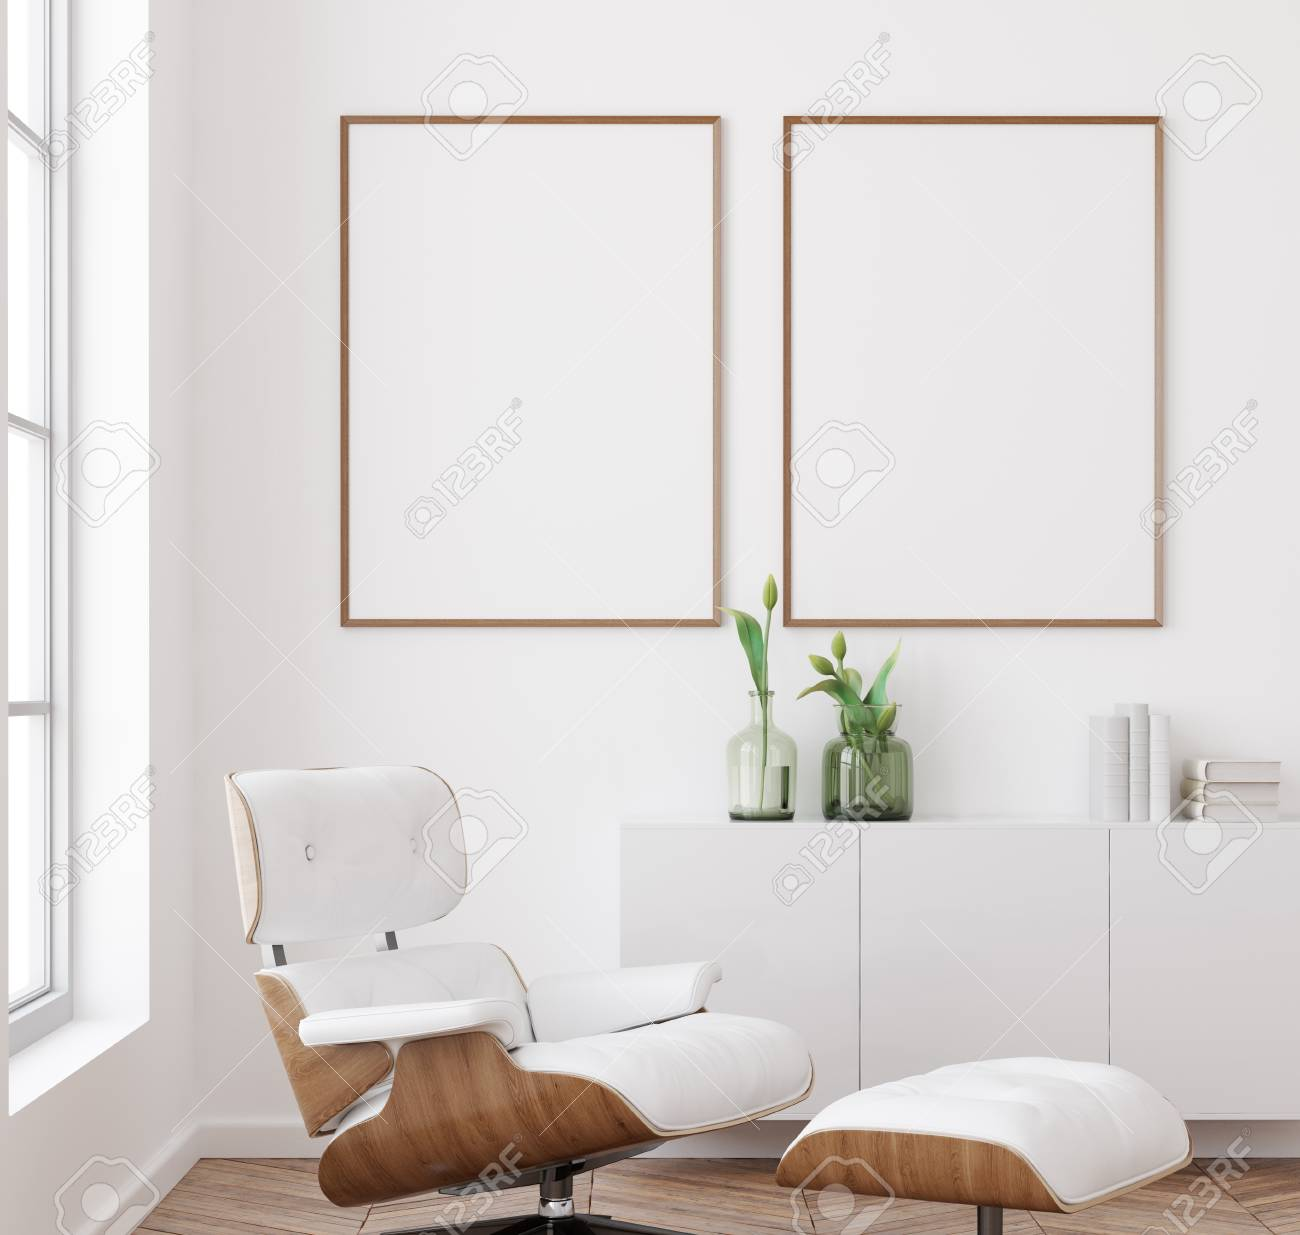 Mockup Poster Frame In White Living Room Interior Background Stock Photo Picture And Royalty Free Image Image 120462489